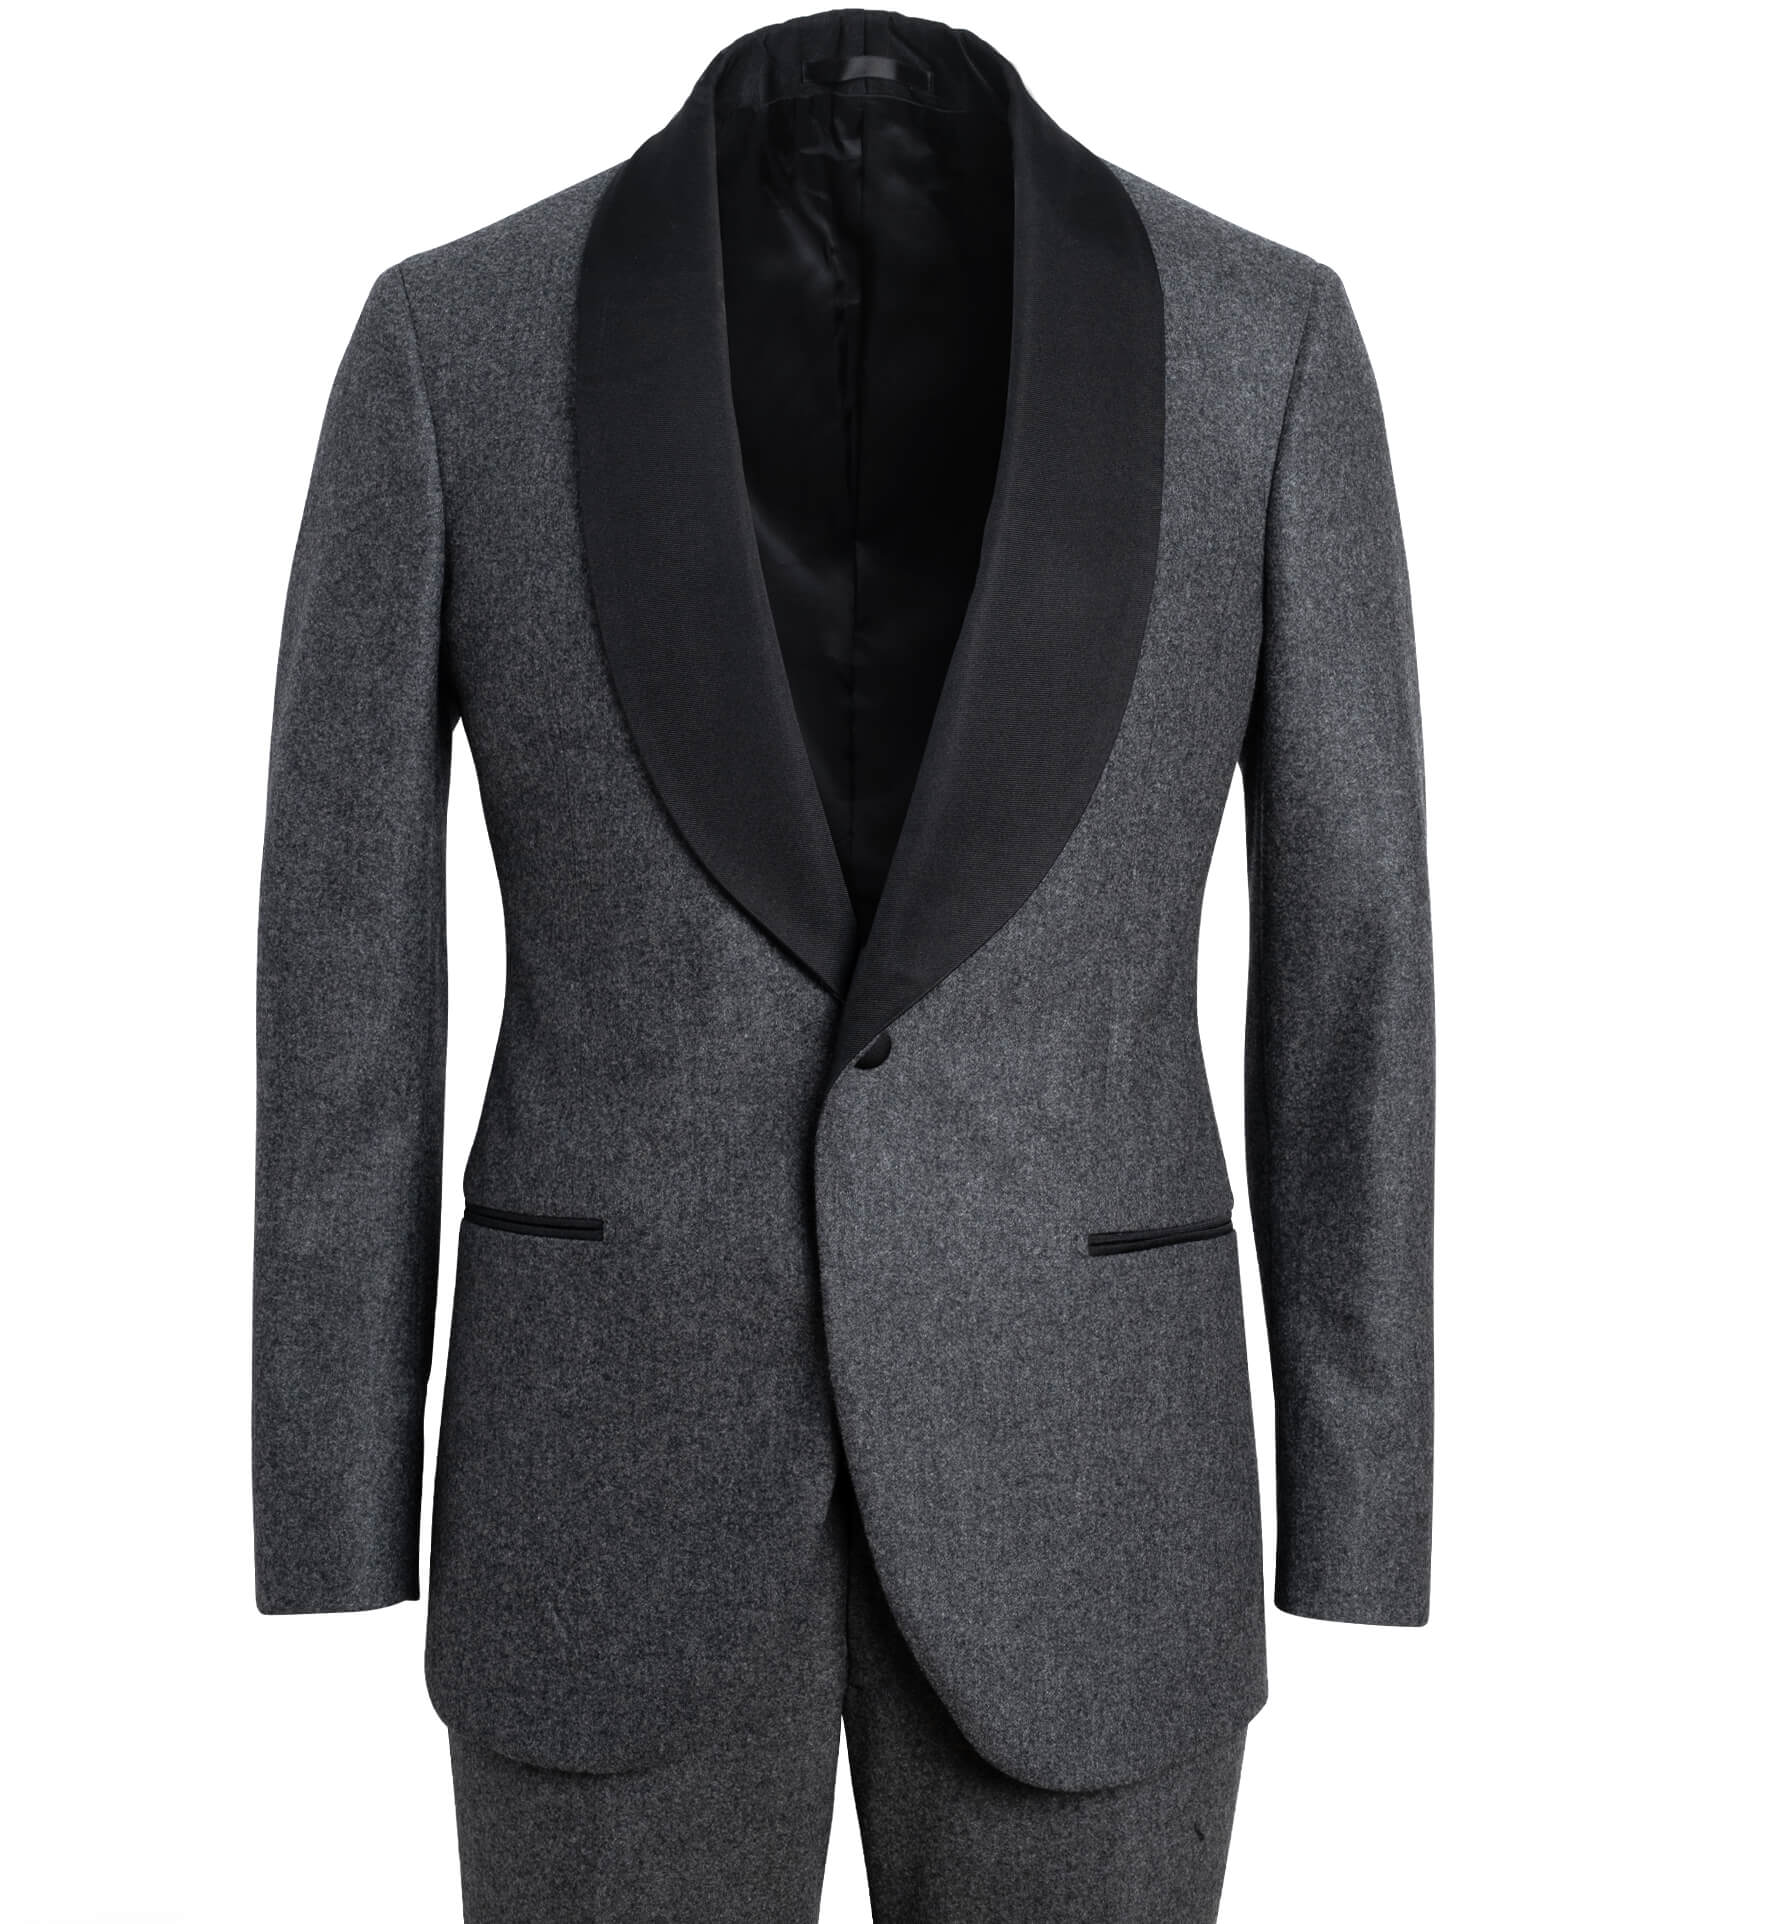 Zoom Image of Mayfair Grey Wool Flannel Shawl Tuxedo